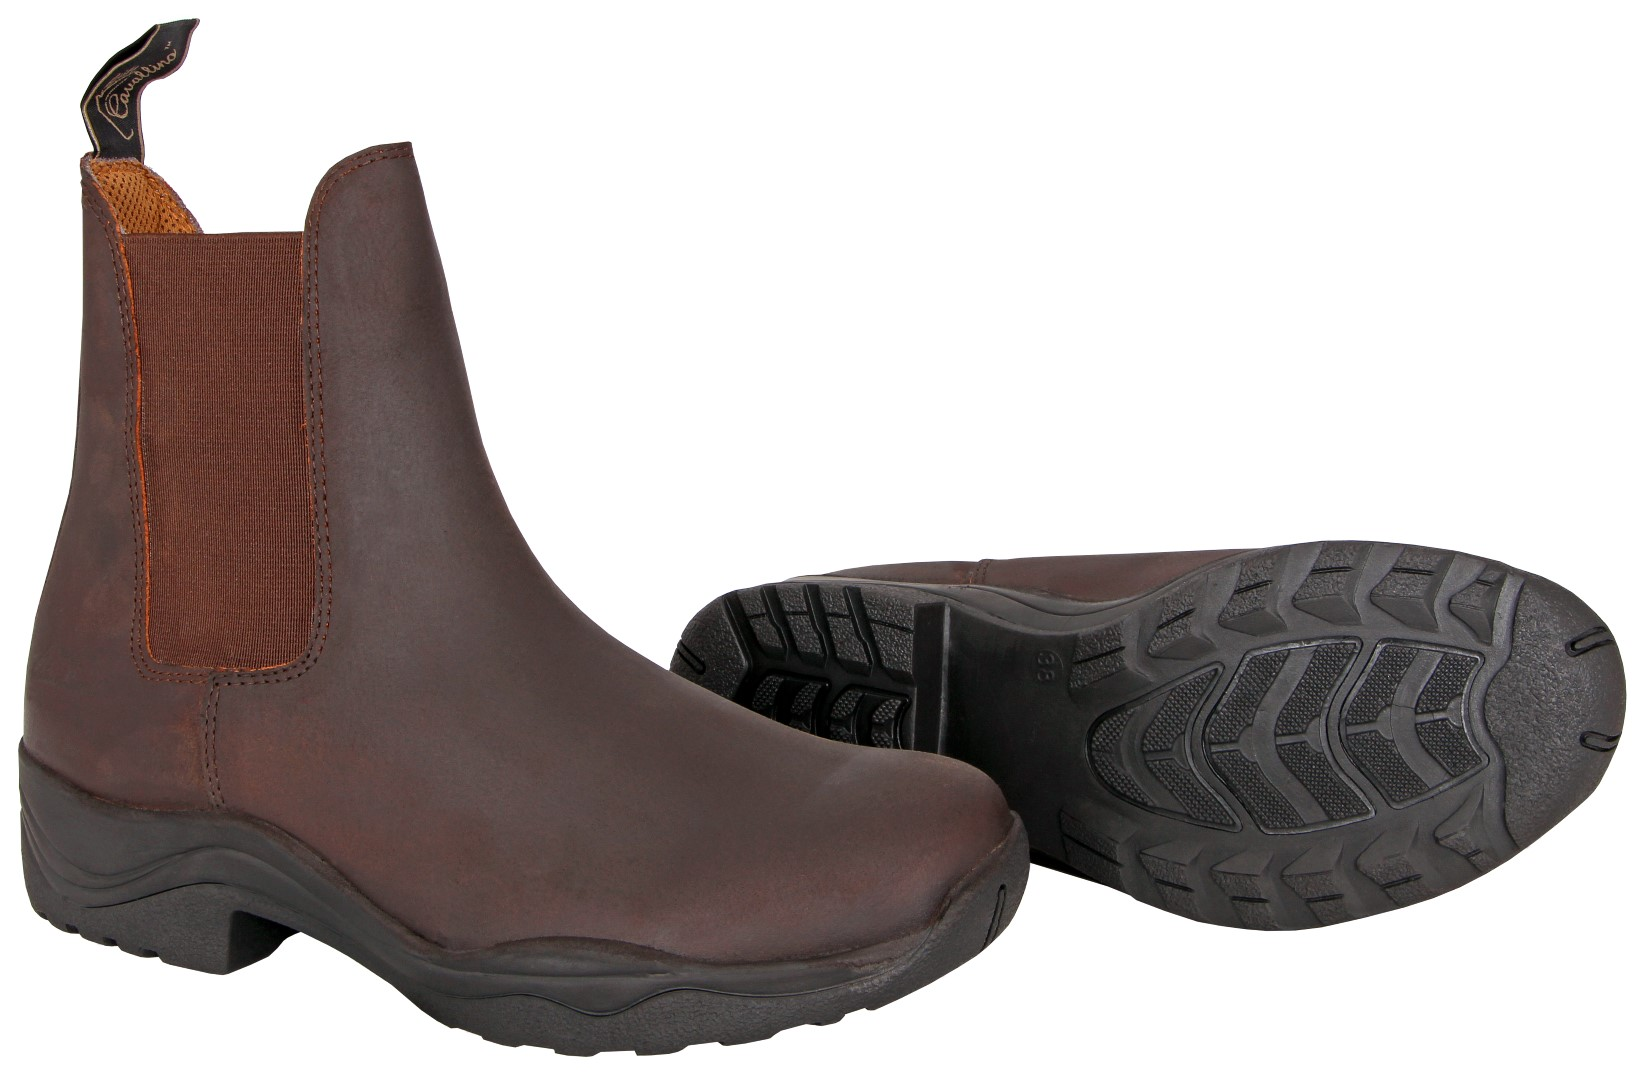 cav stable boot brown